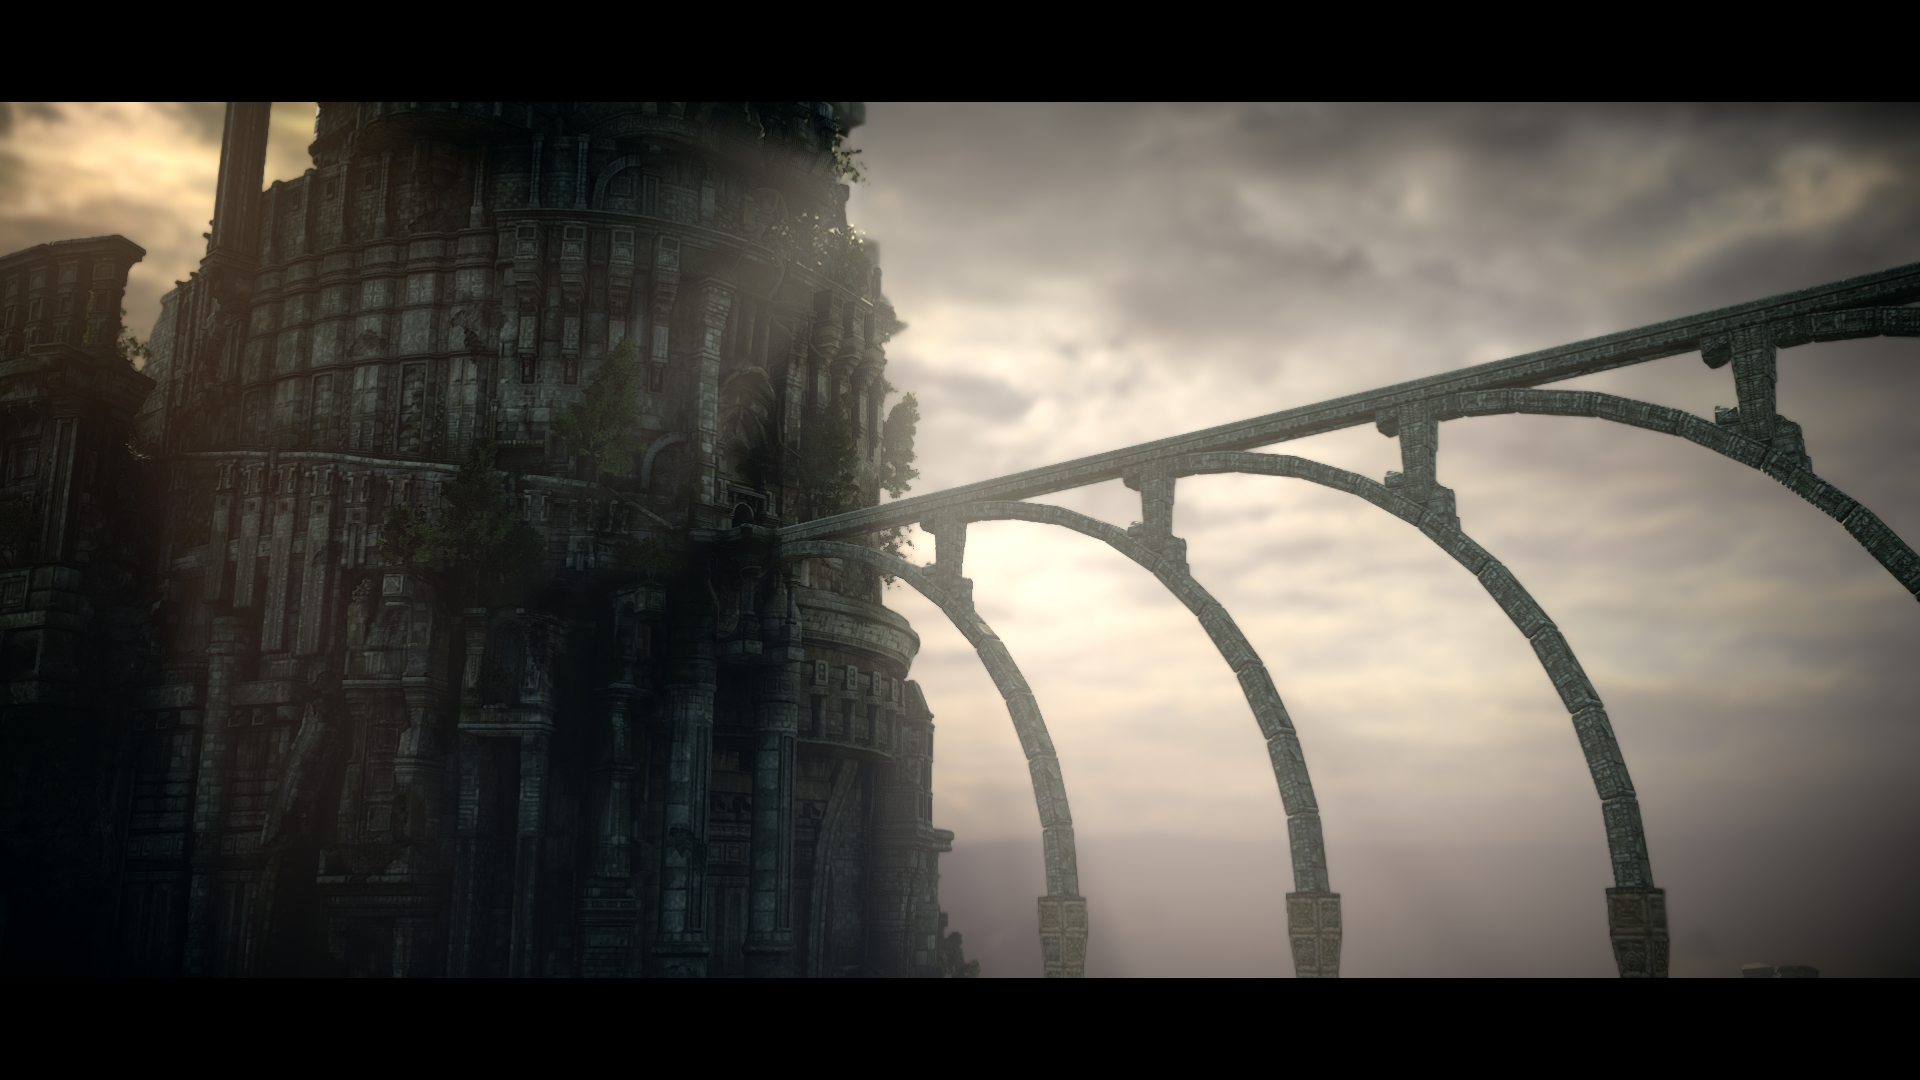 Shadow of the Colossus Remake Photo Mode Image 5